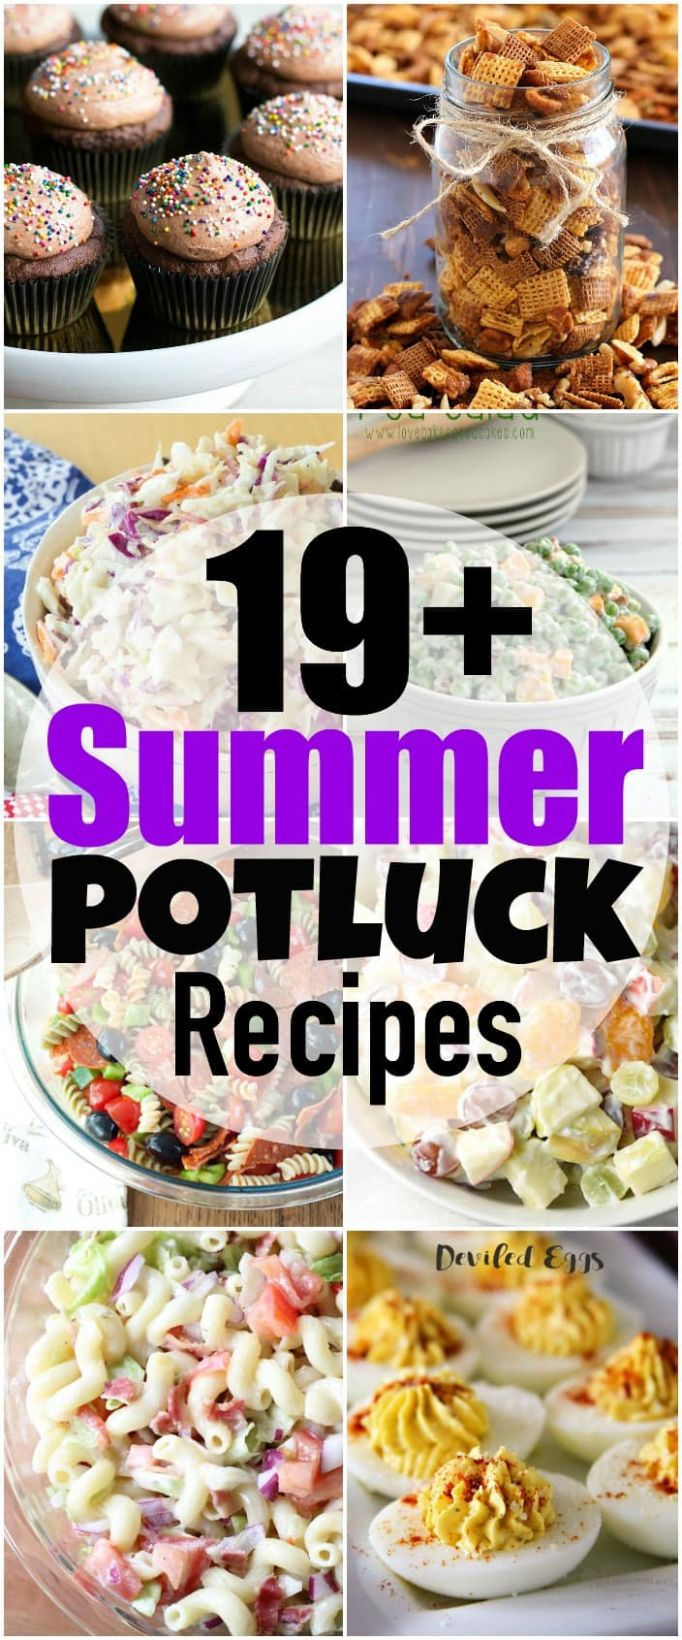 11+ Summer Potluck Recipes - Yummy Healthy Easy - Recipes Summer Potluck